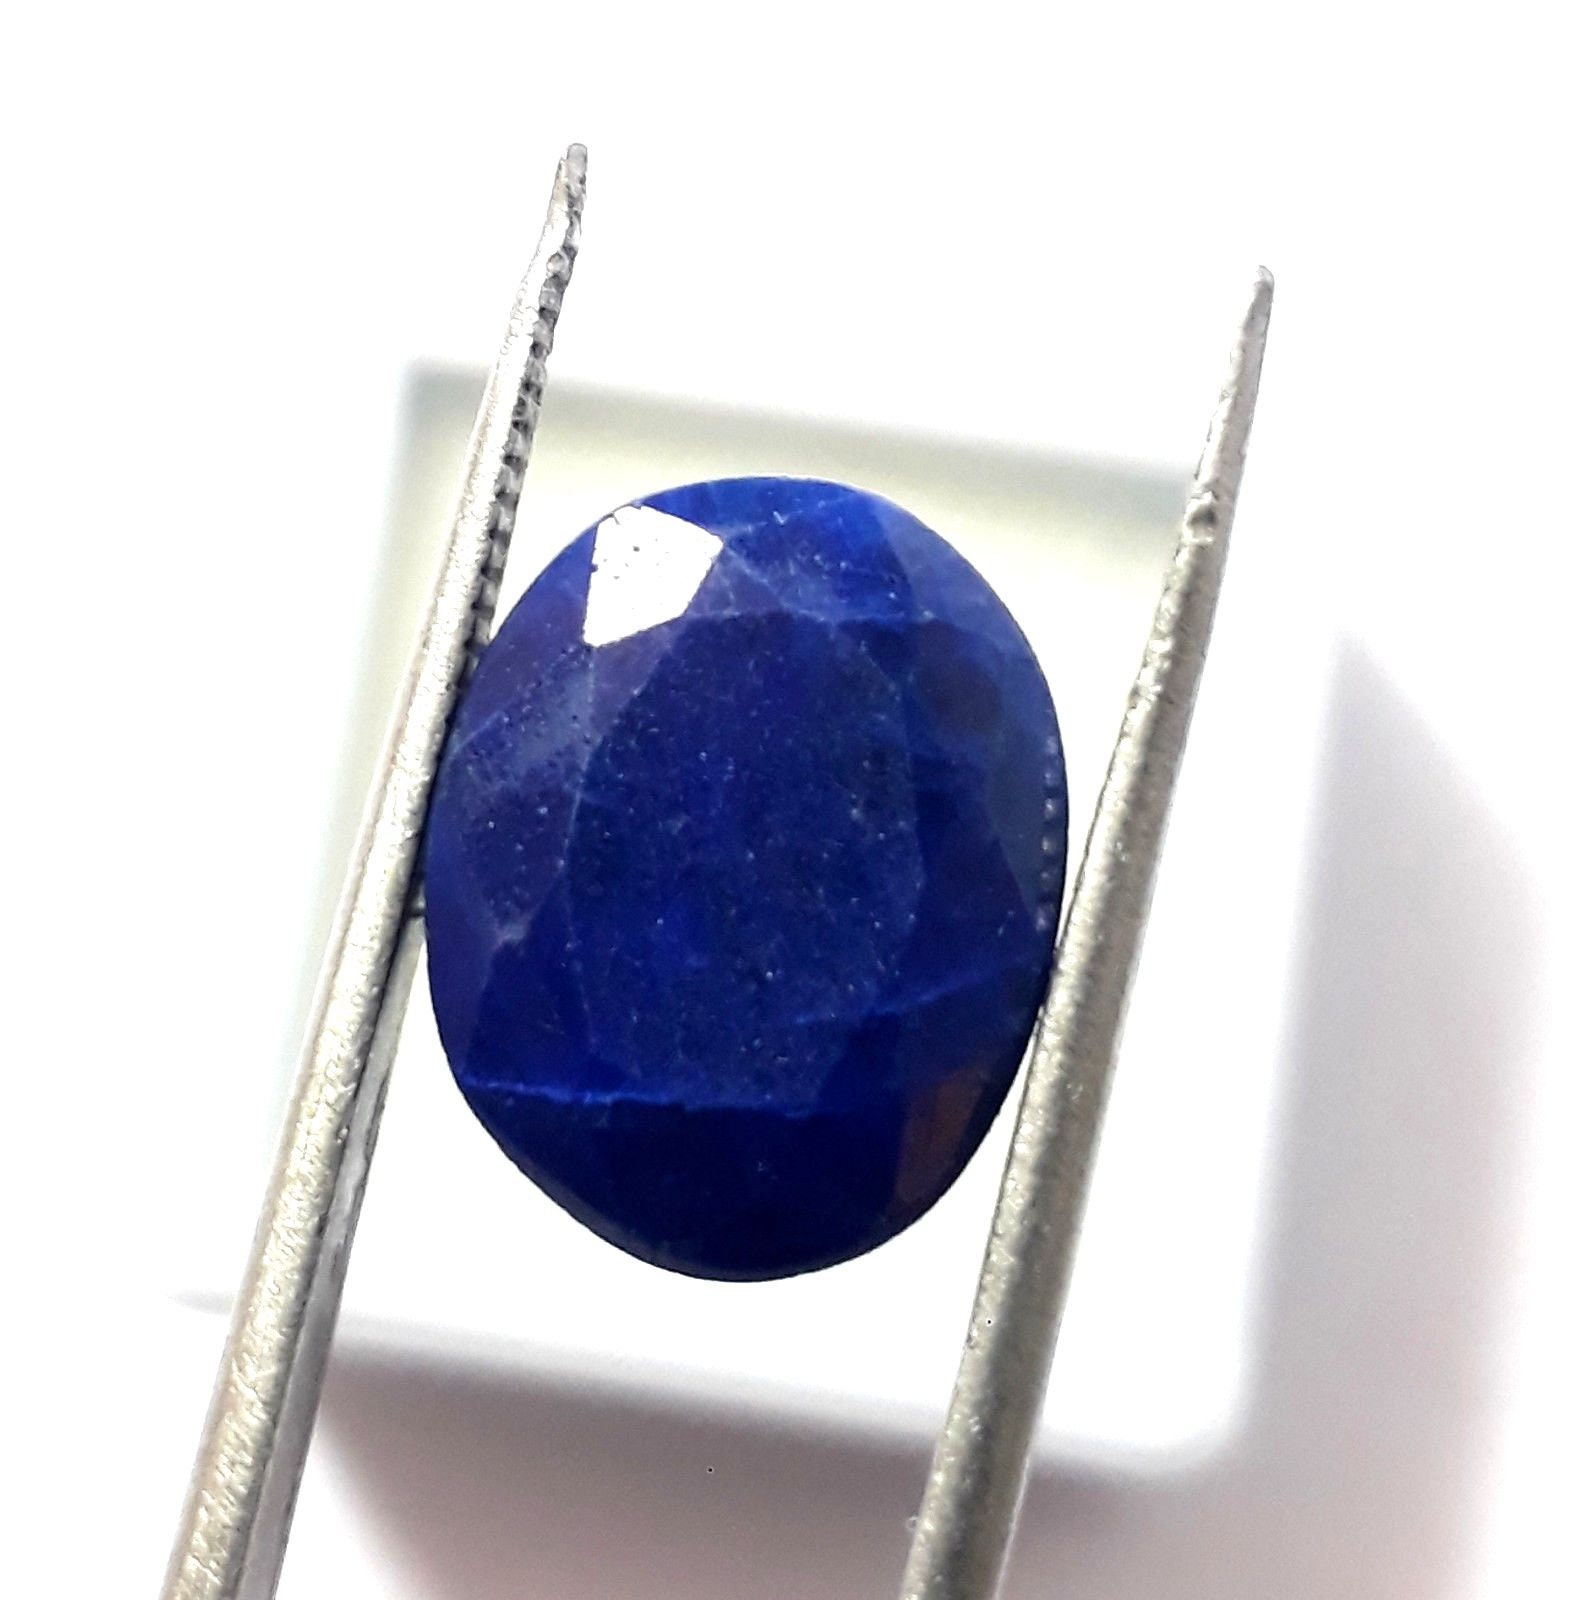 big jewelers sri collections at lankan plante buy sapphire ma blue online real swansea gemstones gems